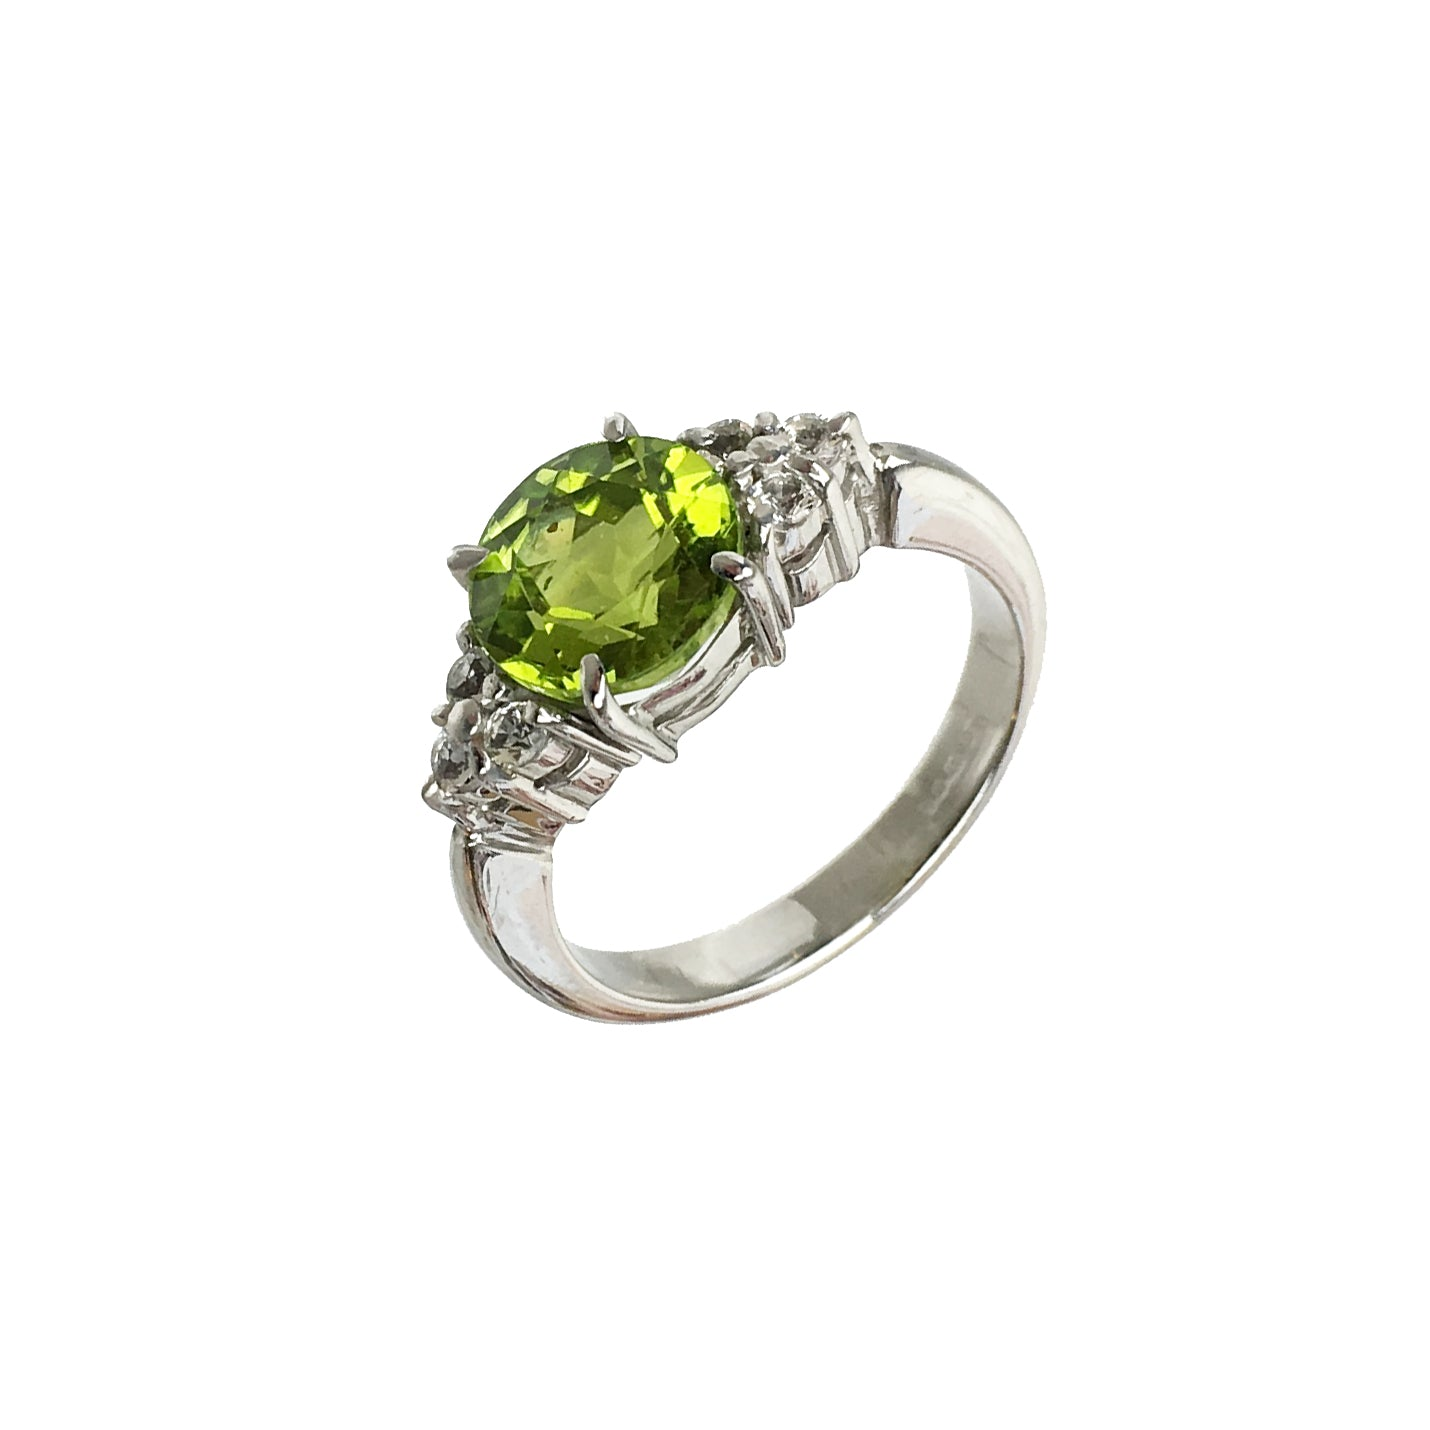 silver jewelrypalace solid natural ring rings gemstone product specifics peridot women vintage stones sterling fabulous charm hot item wedding